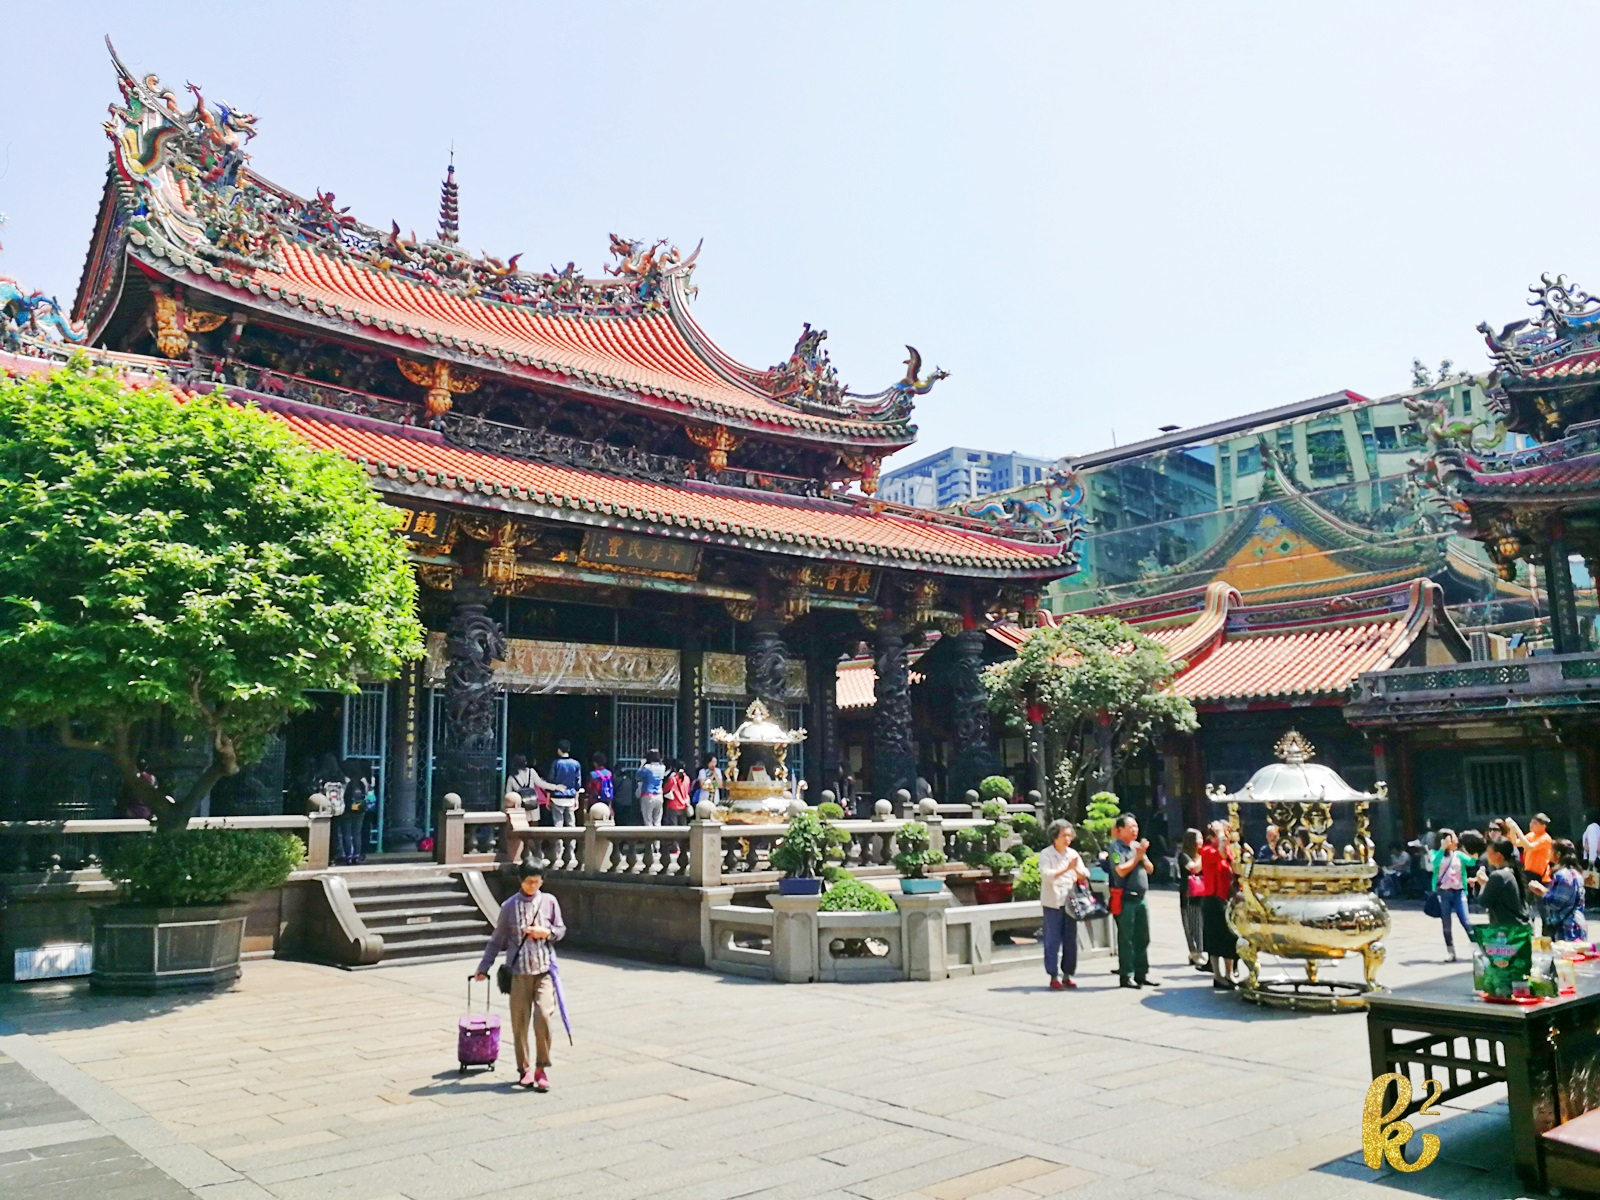 taiwan, travel, places to visit in taiwan, taiwan tourism, taiwan travel, longshan temple